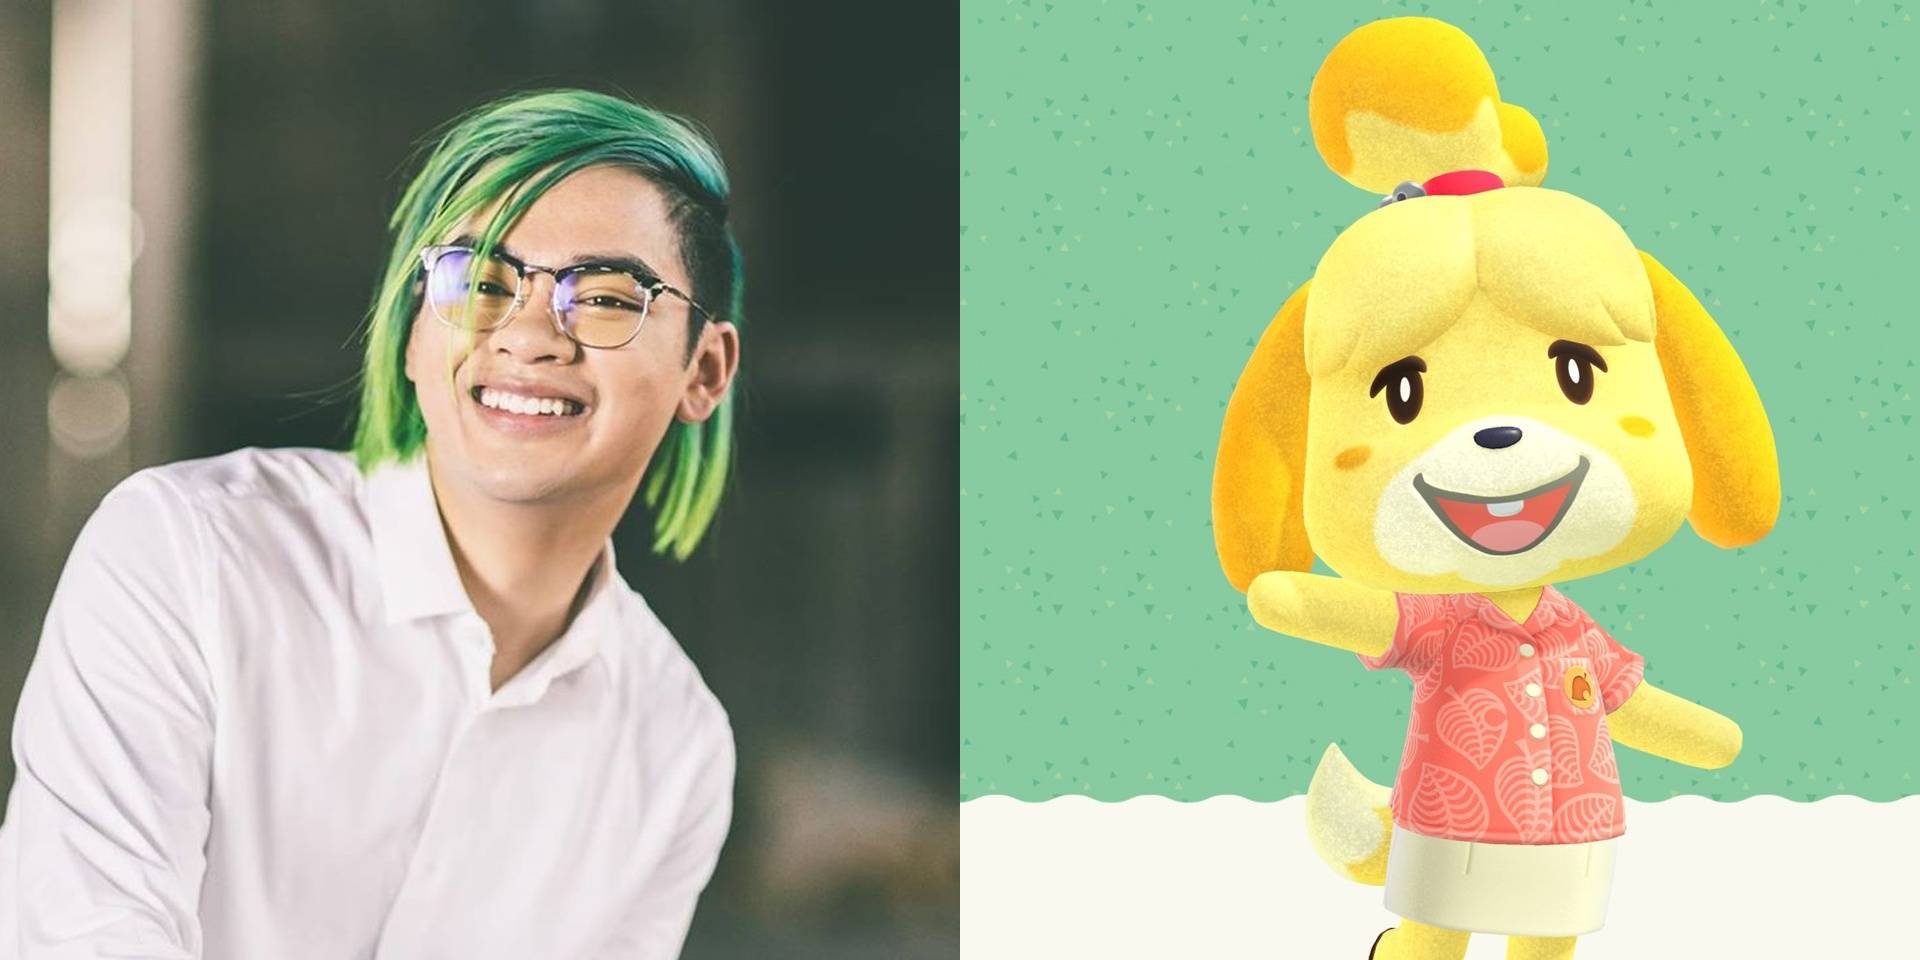 Shawn Wasabi drops playful Animal Crossing tribute in time for game release – listen